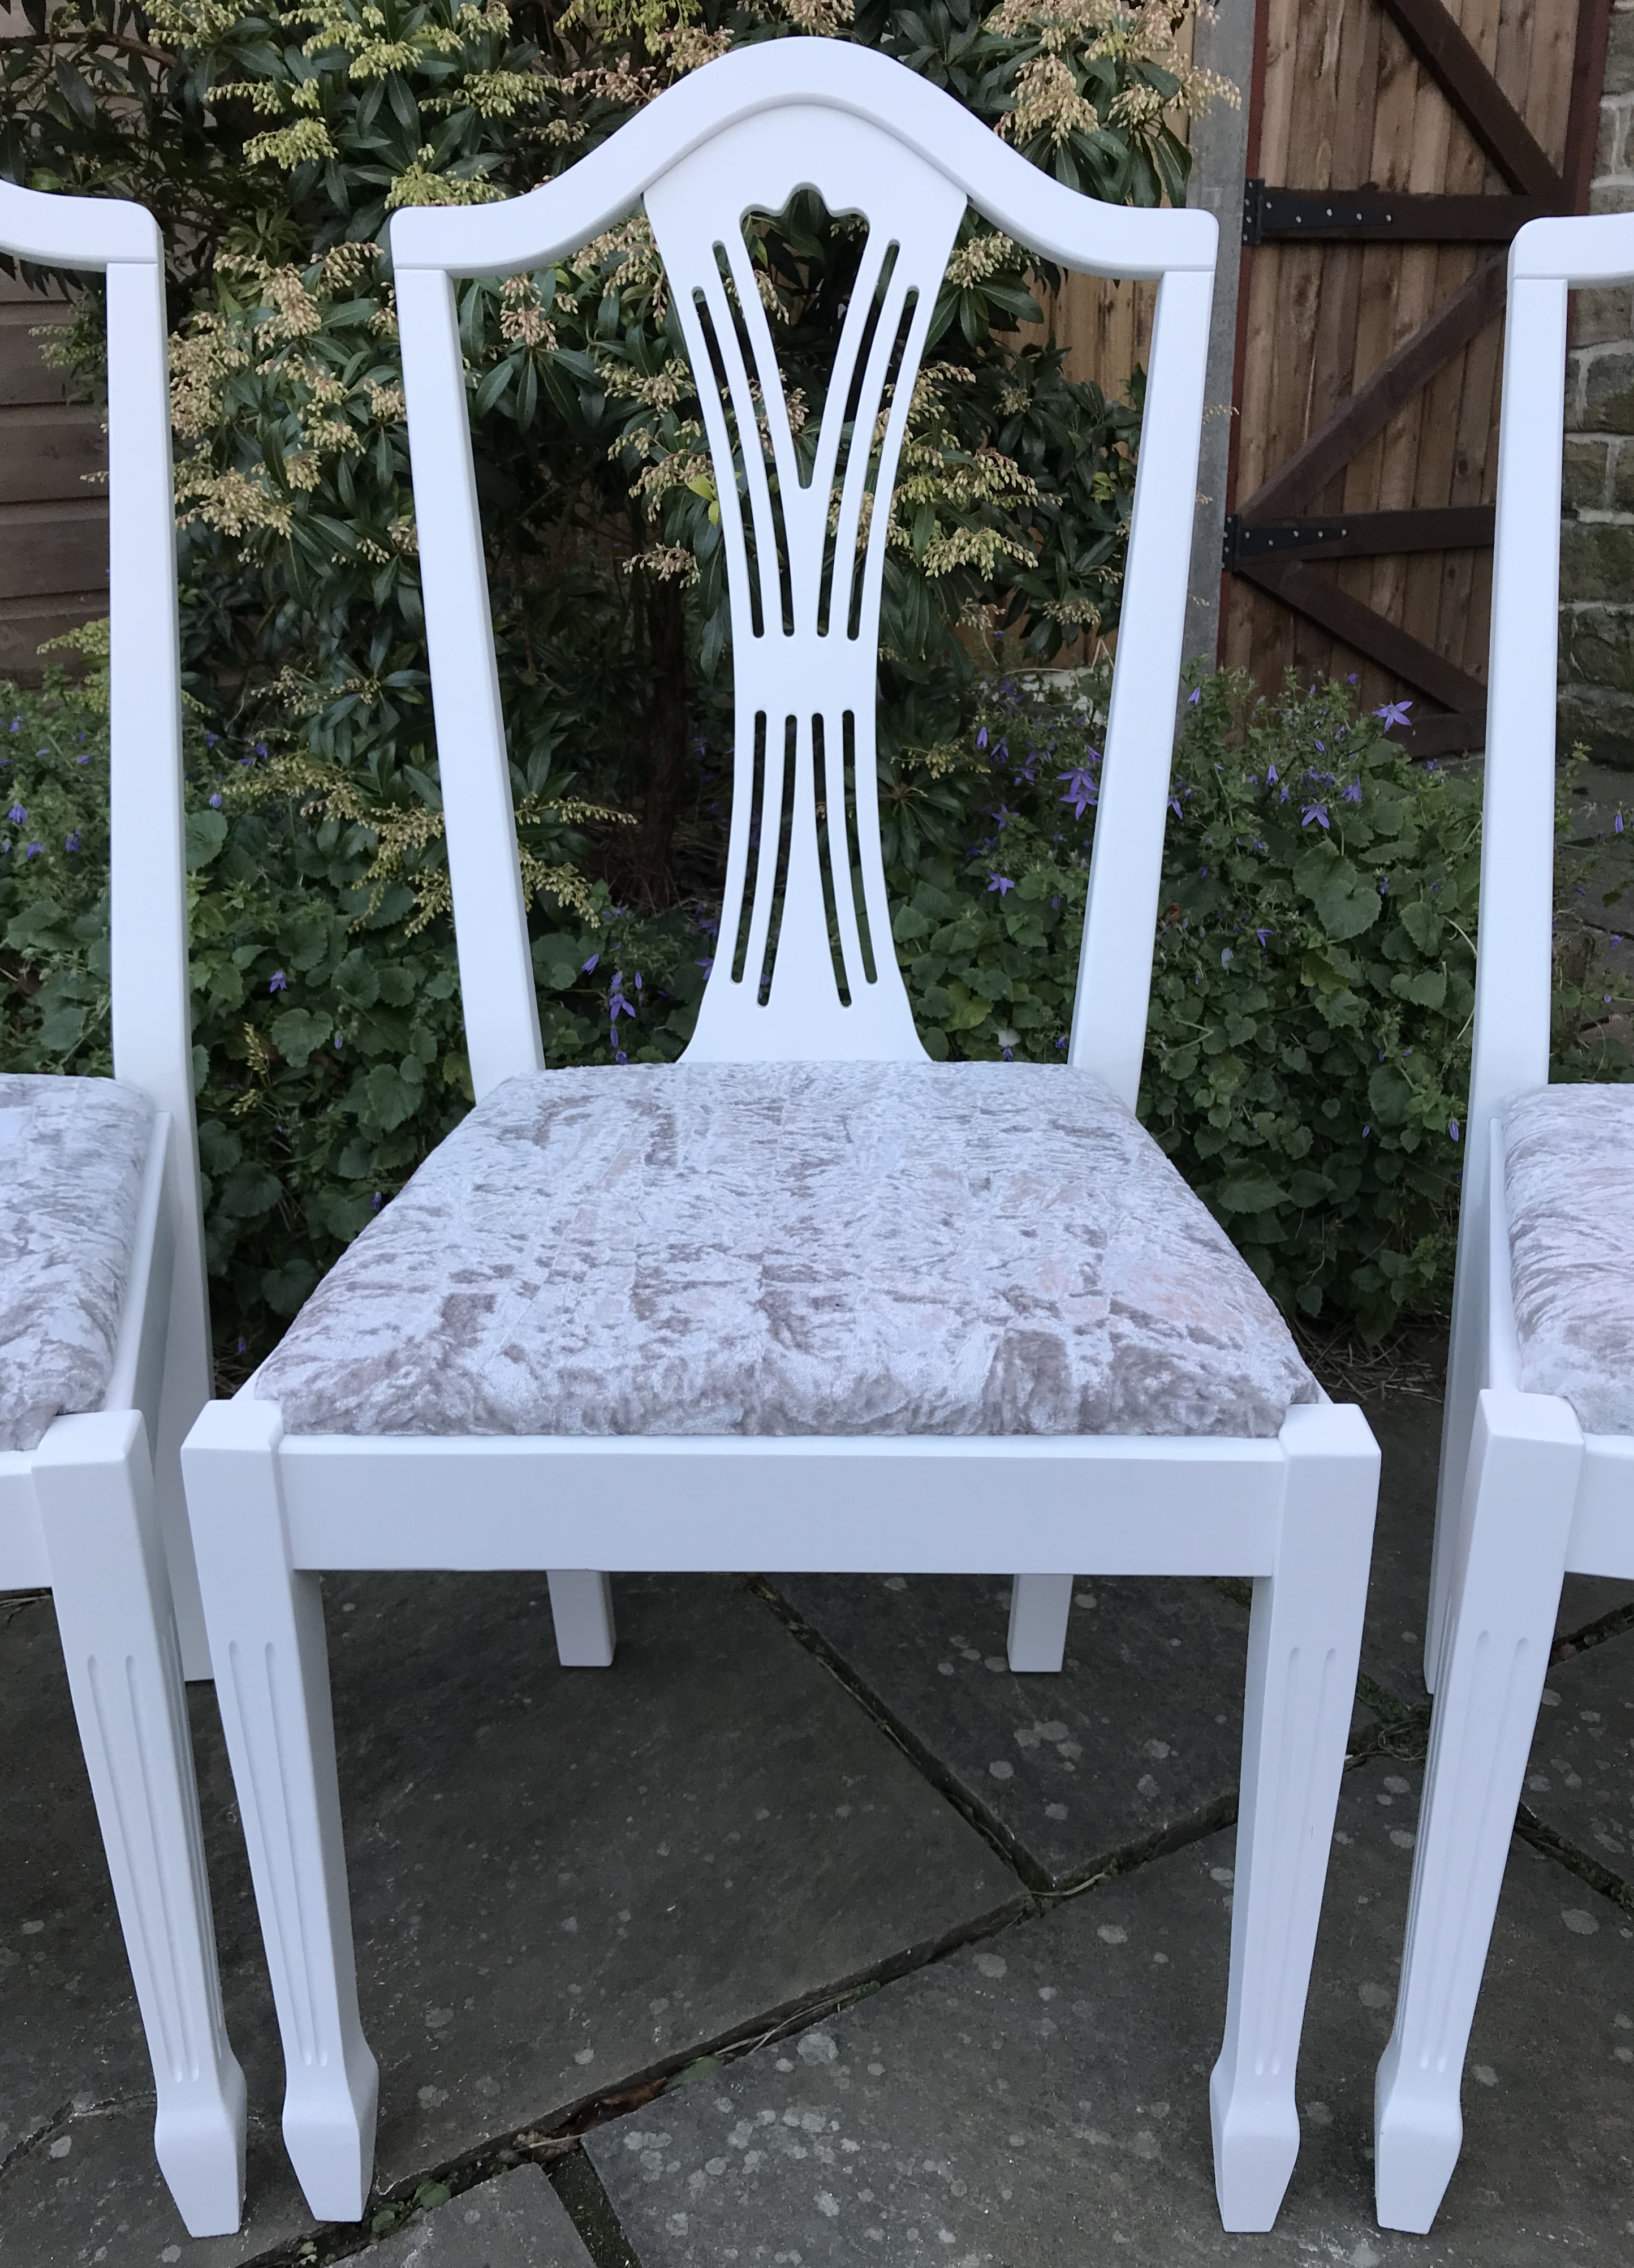 Extending Dining Table & 6 Chairs upholstered in Silver Crushed Velvet